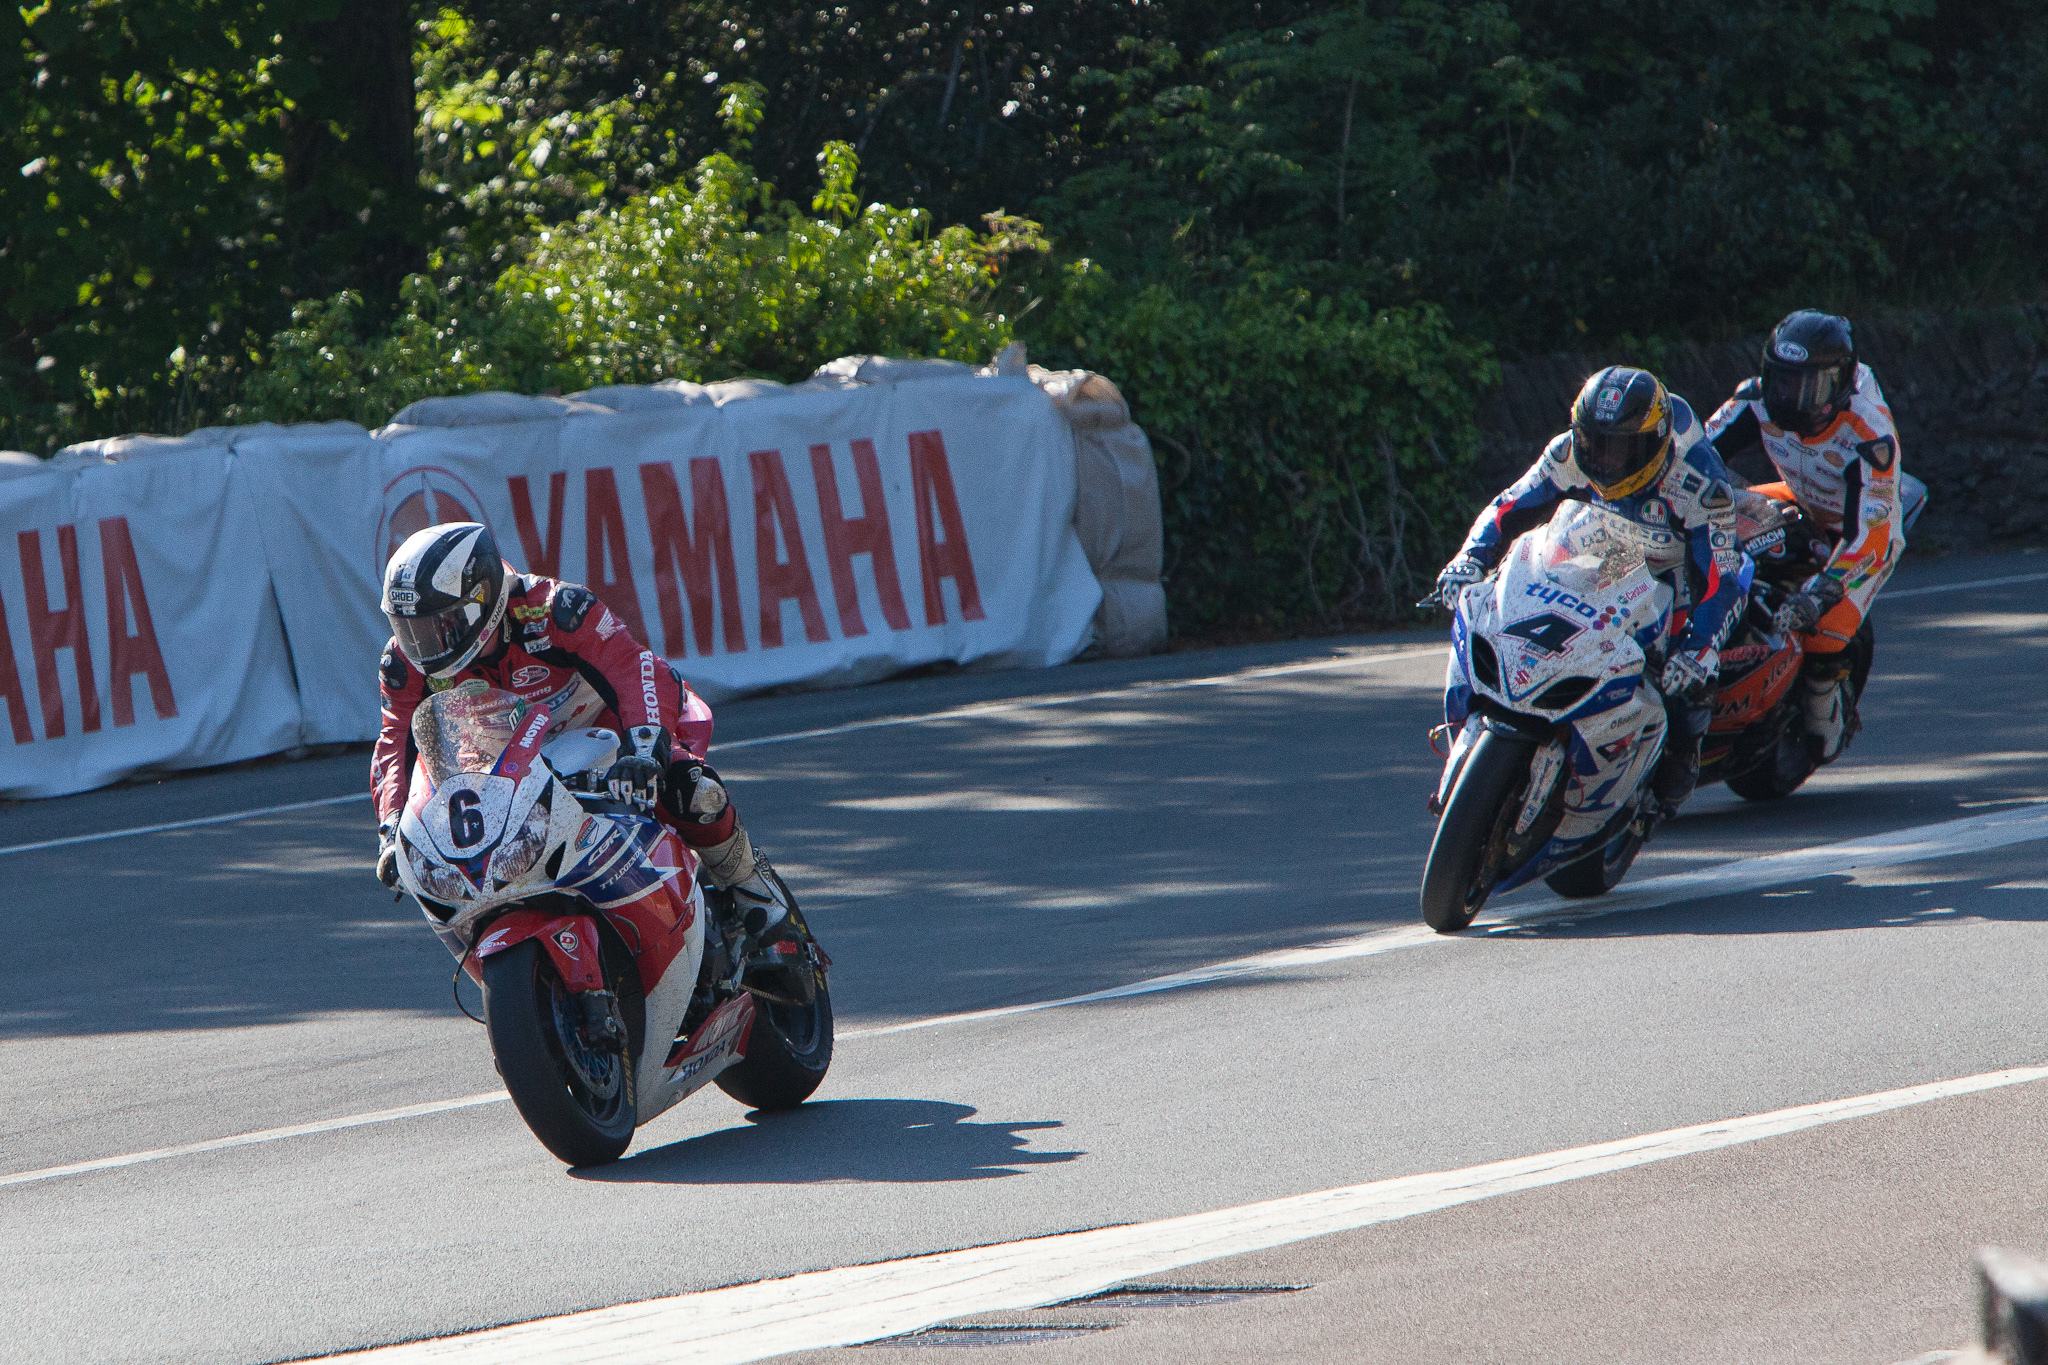 Michael Dunlop, Guy Martin and Bruce Anstey at Governor's Bridge TT 2013 image credit Phil Long on flickr